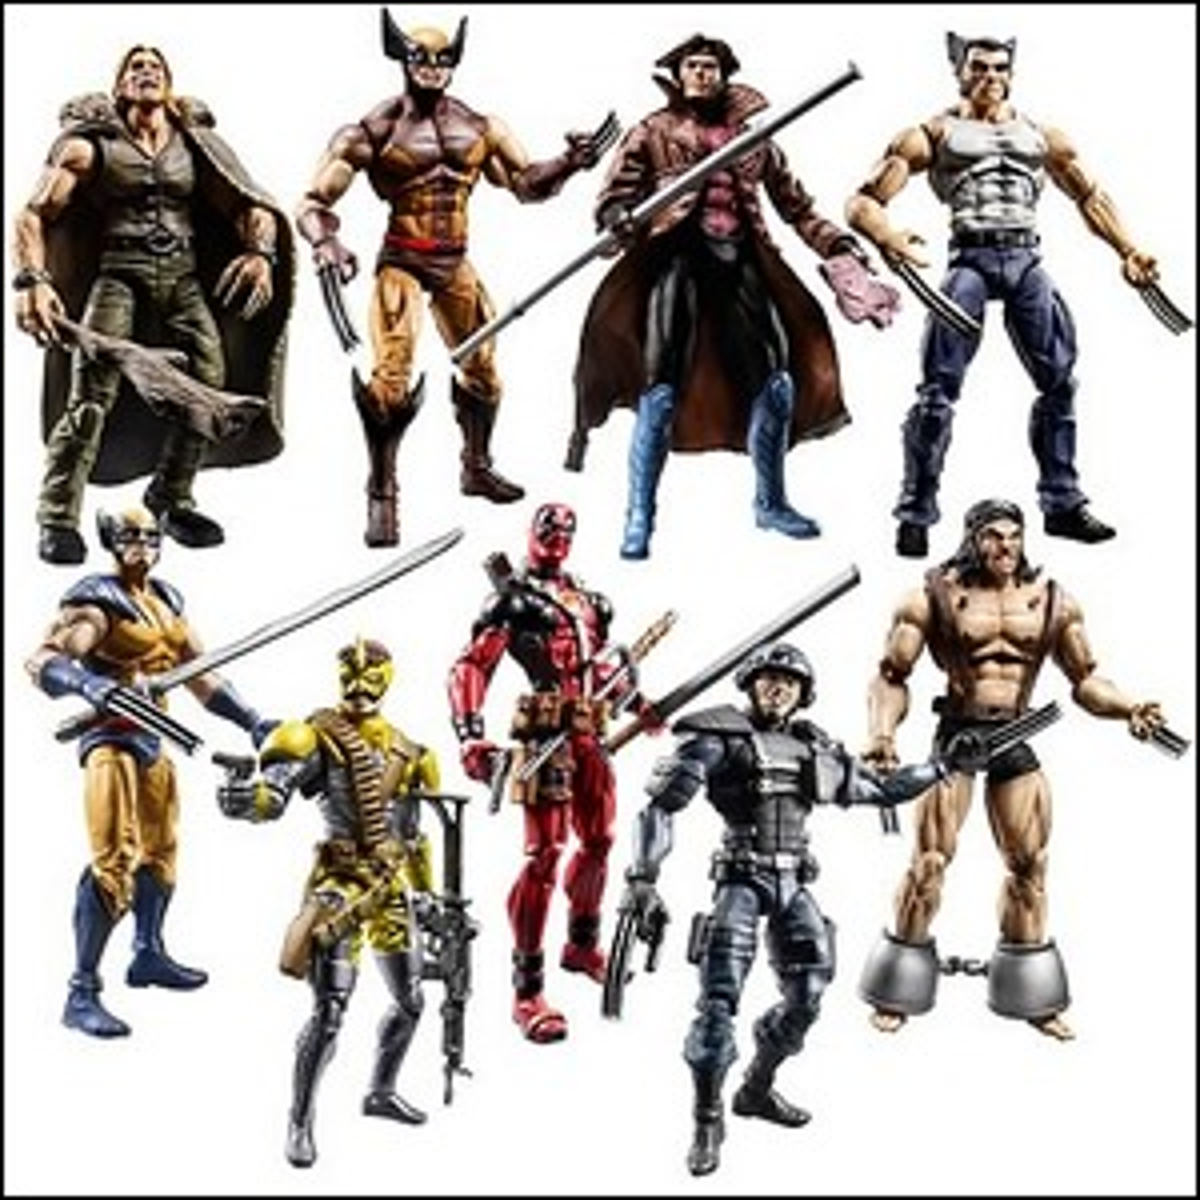 A group of Marvel action figures.